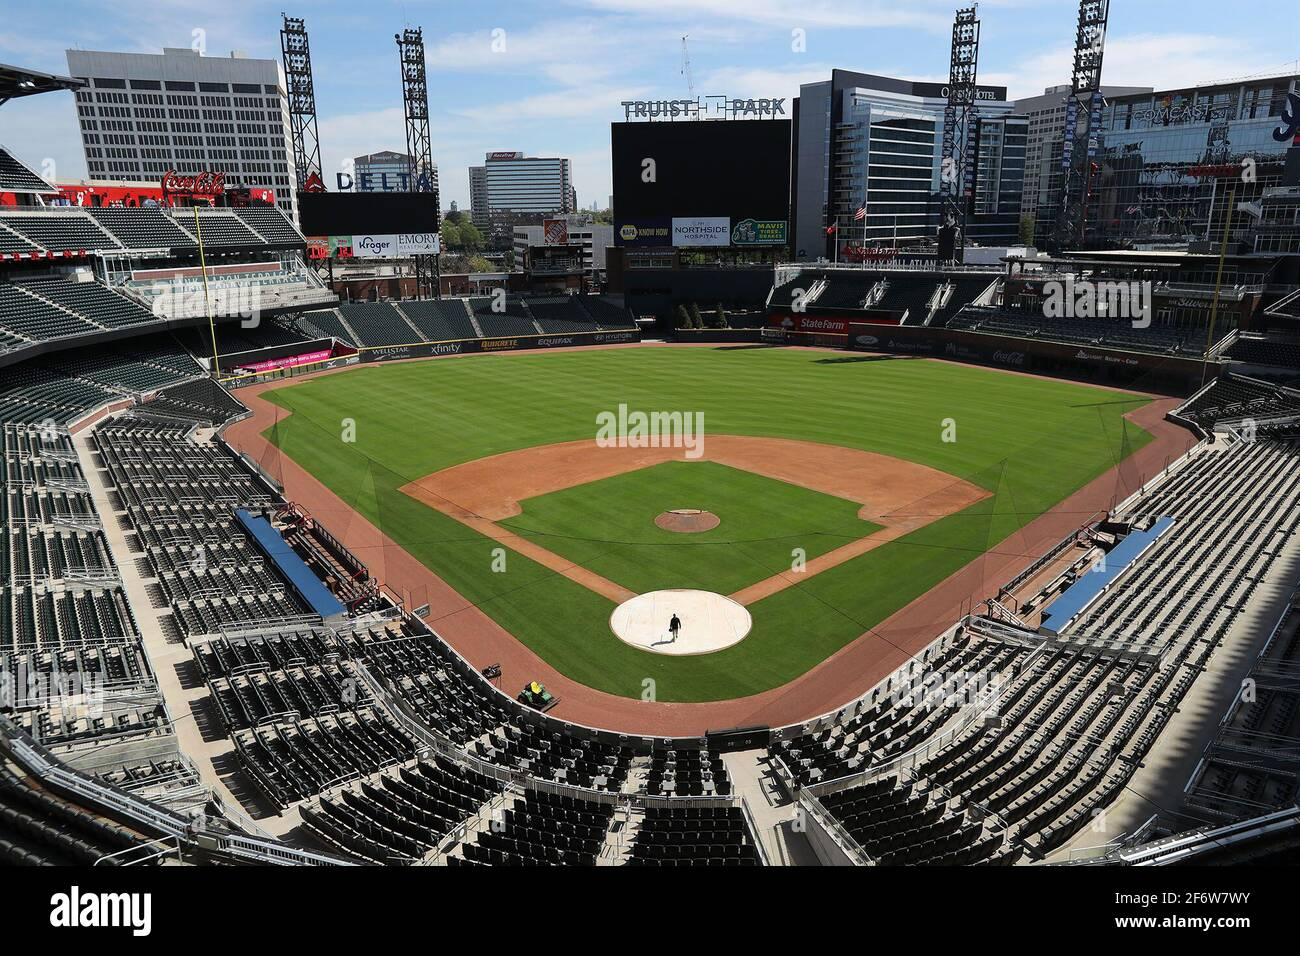 Atlanta, USA. 01st Apr, 2020. Truist Park on April 1, 2020, in Atlanta. In response to Georgia's new voting law, Major League Baseball announced that it will move it's All-Star Game from the park. (Photo by Curtis Compton/Atlanta Journal-Constitution/TNS/Sipa USA) Credit: Sipa USA/Alamy Live News Stock Photo